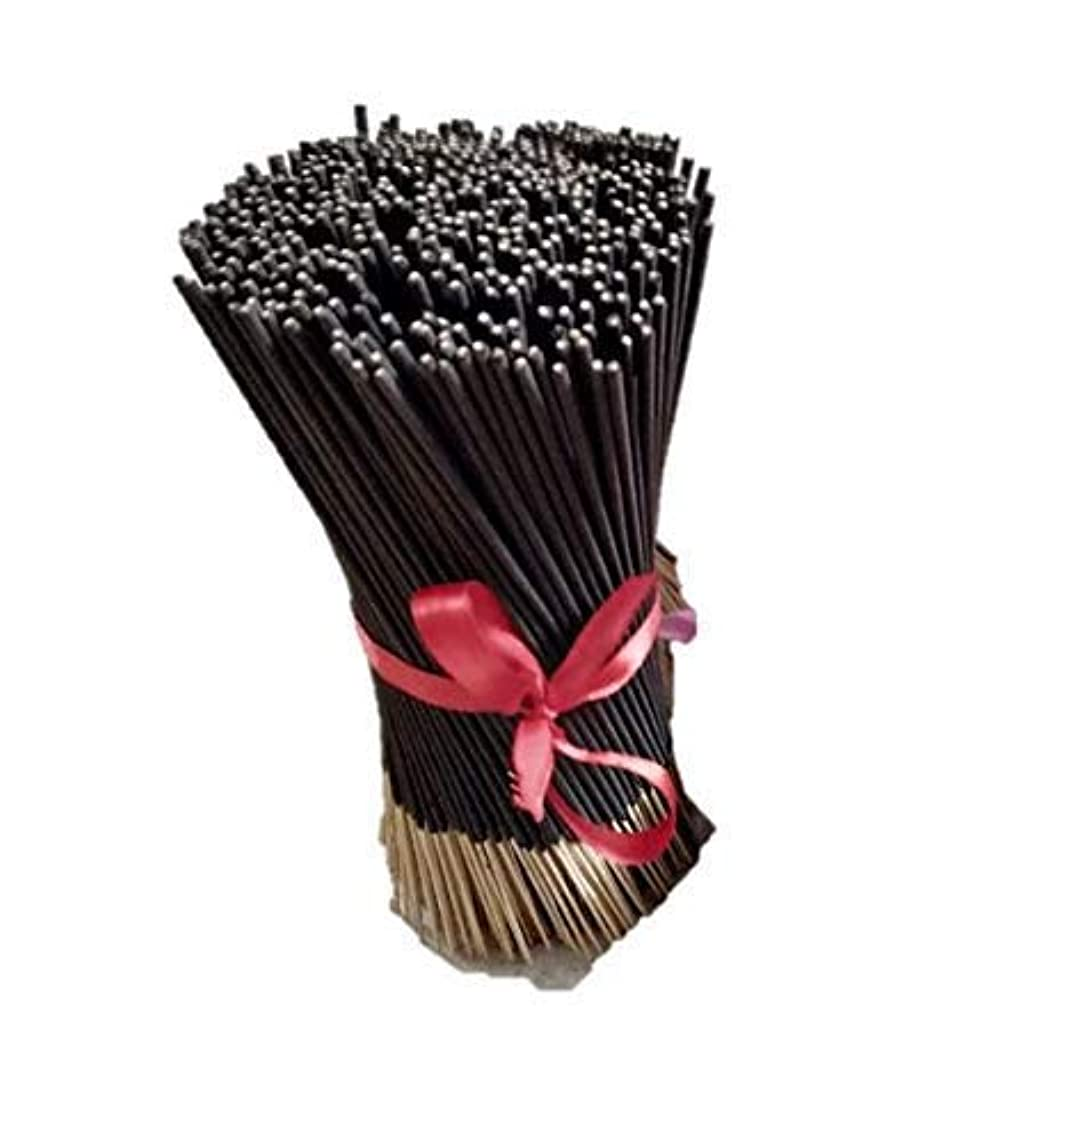 不誠実淡い繁栄するAroma Natural Products Raw Charcoal Incense Stick 1 Kilograms